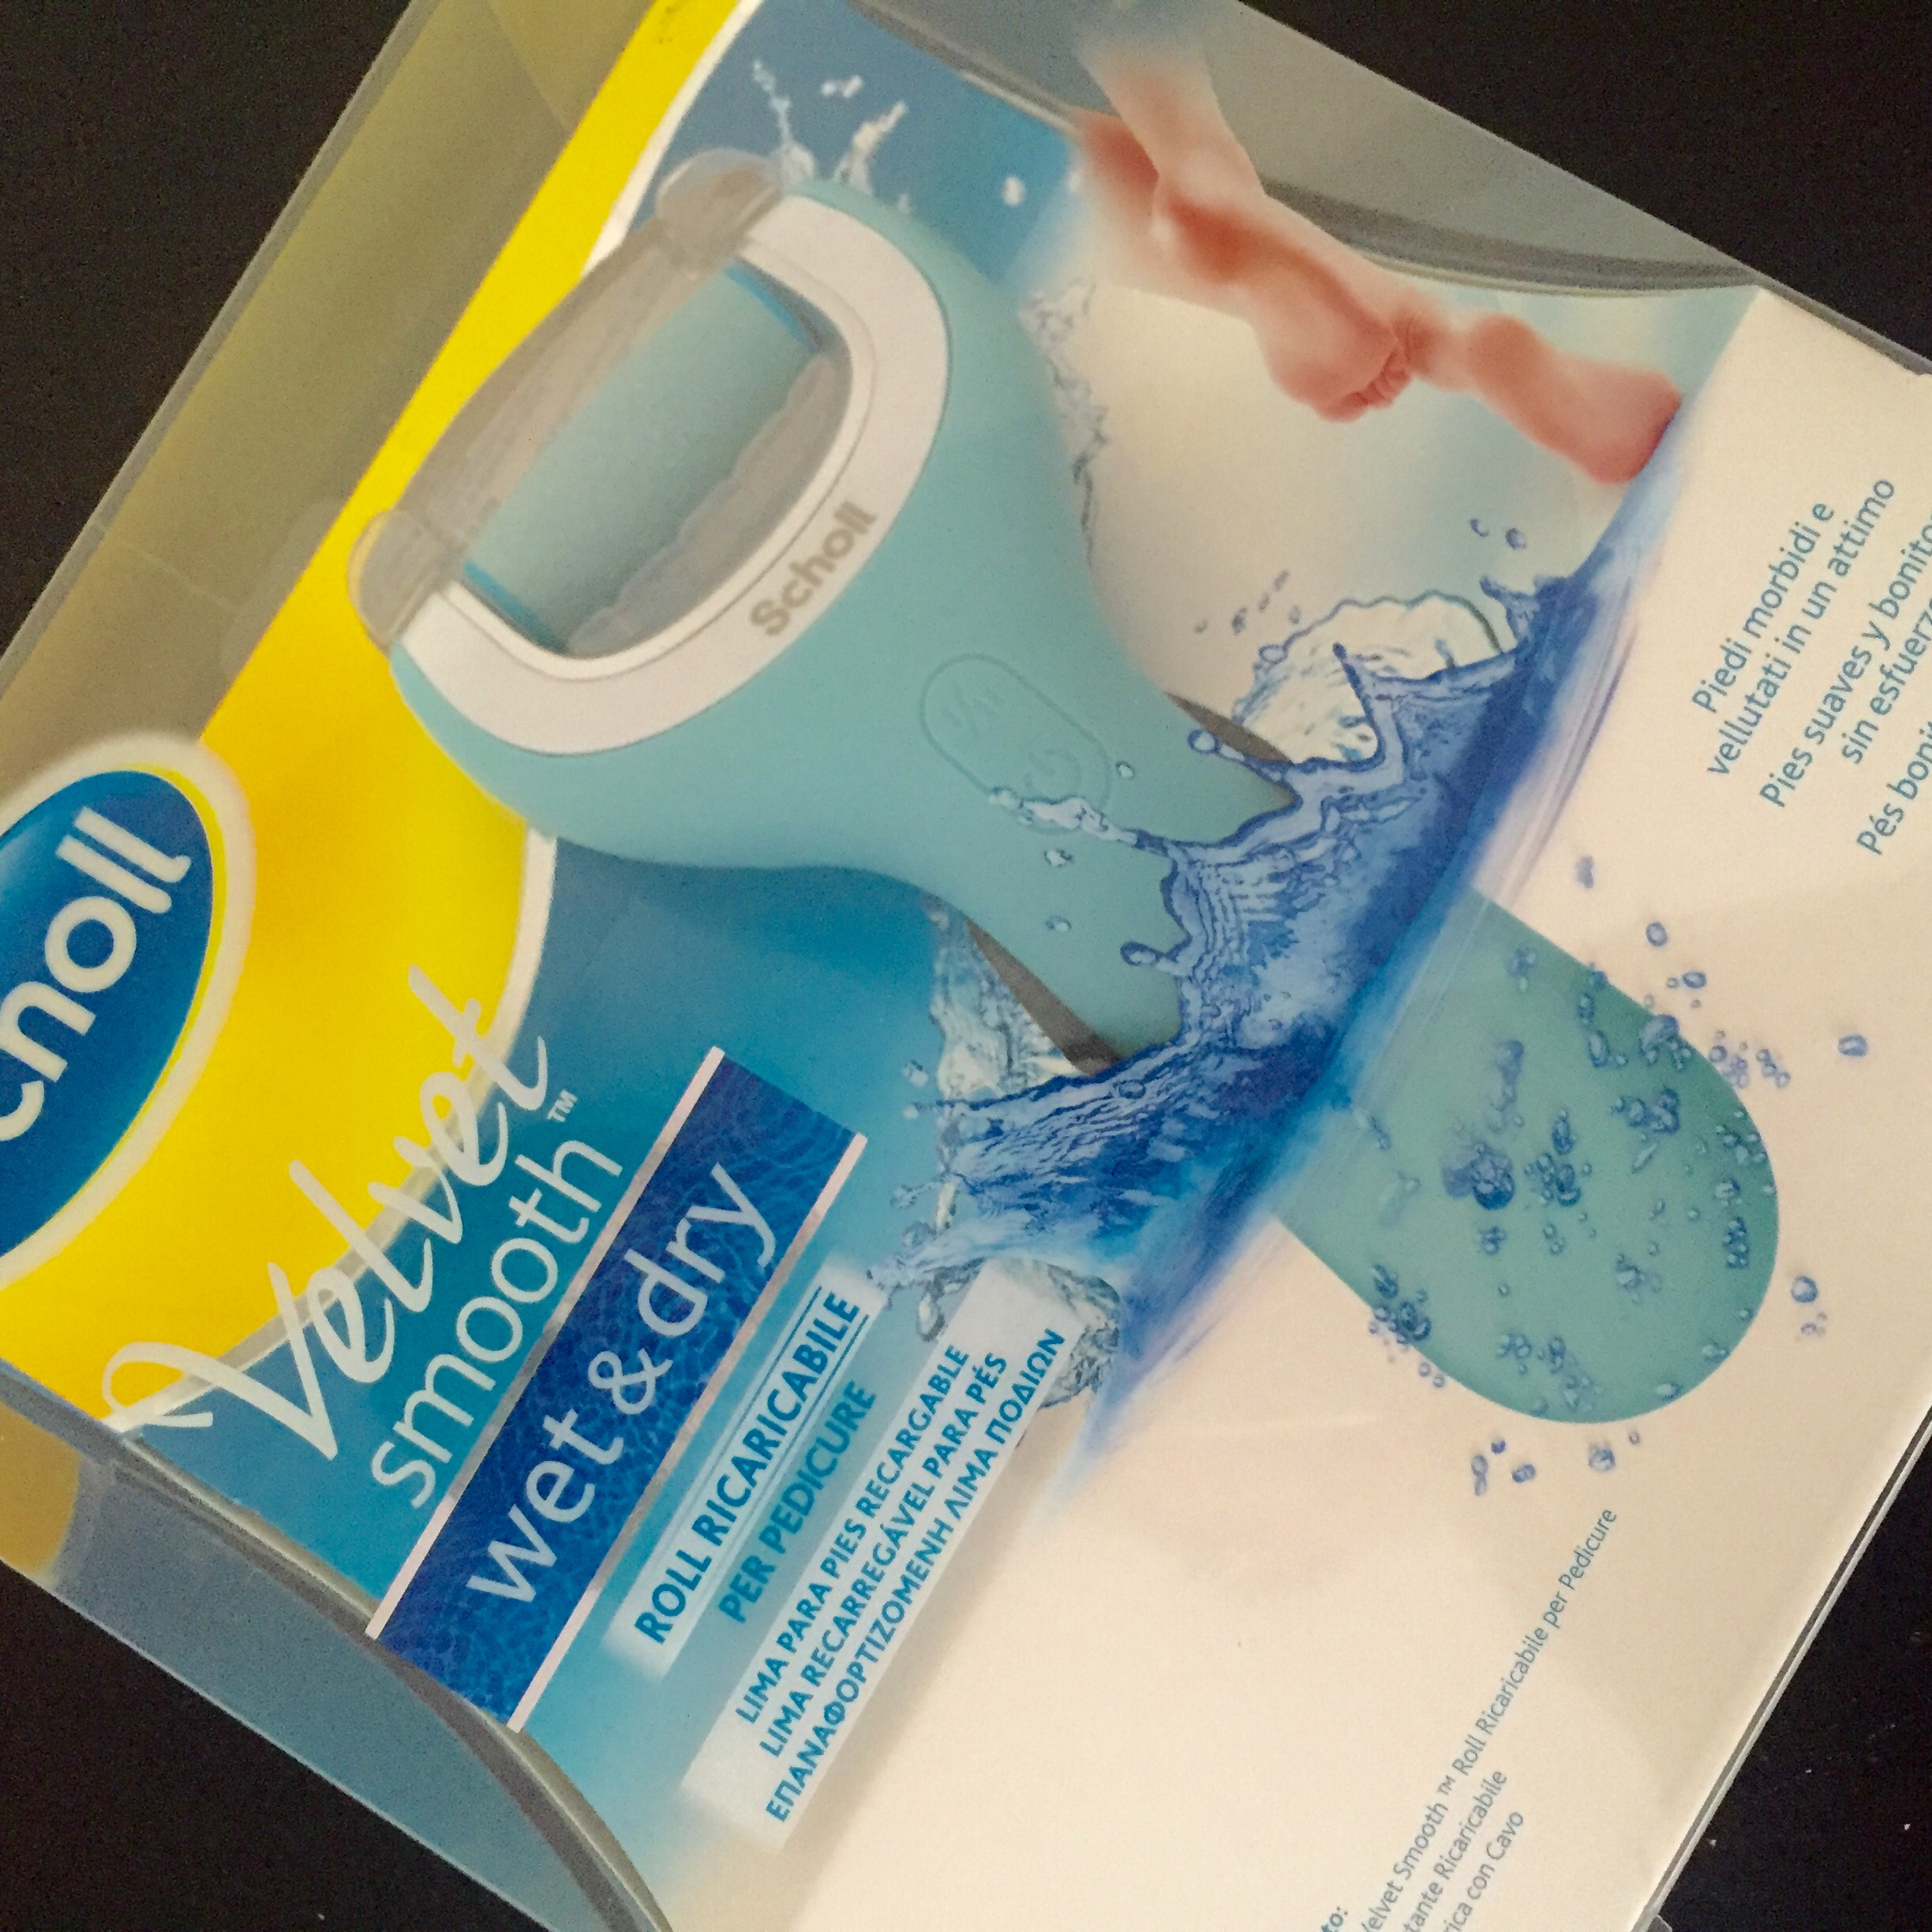 scholl talloni pedicure- levigare consigli beauty estate